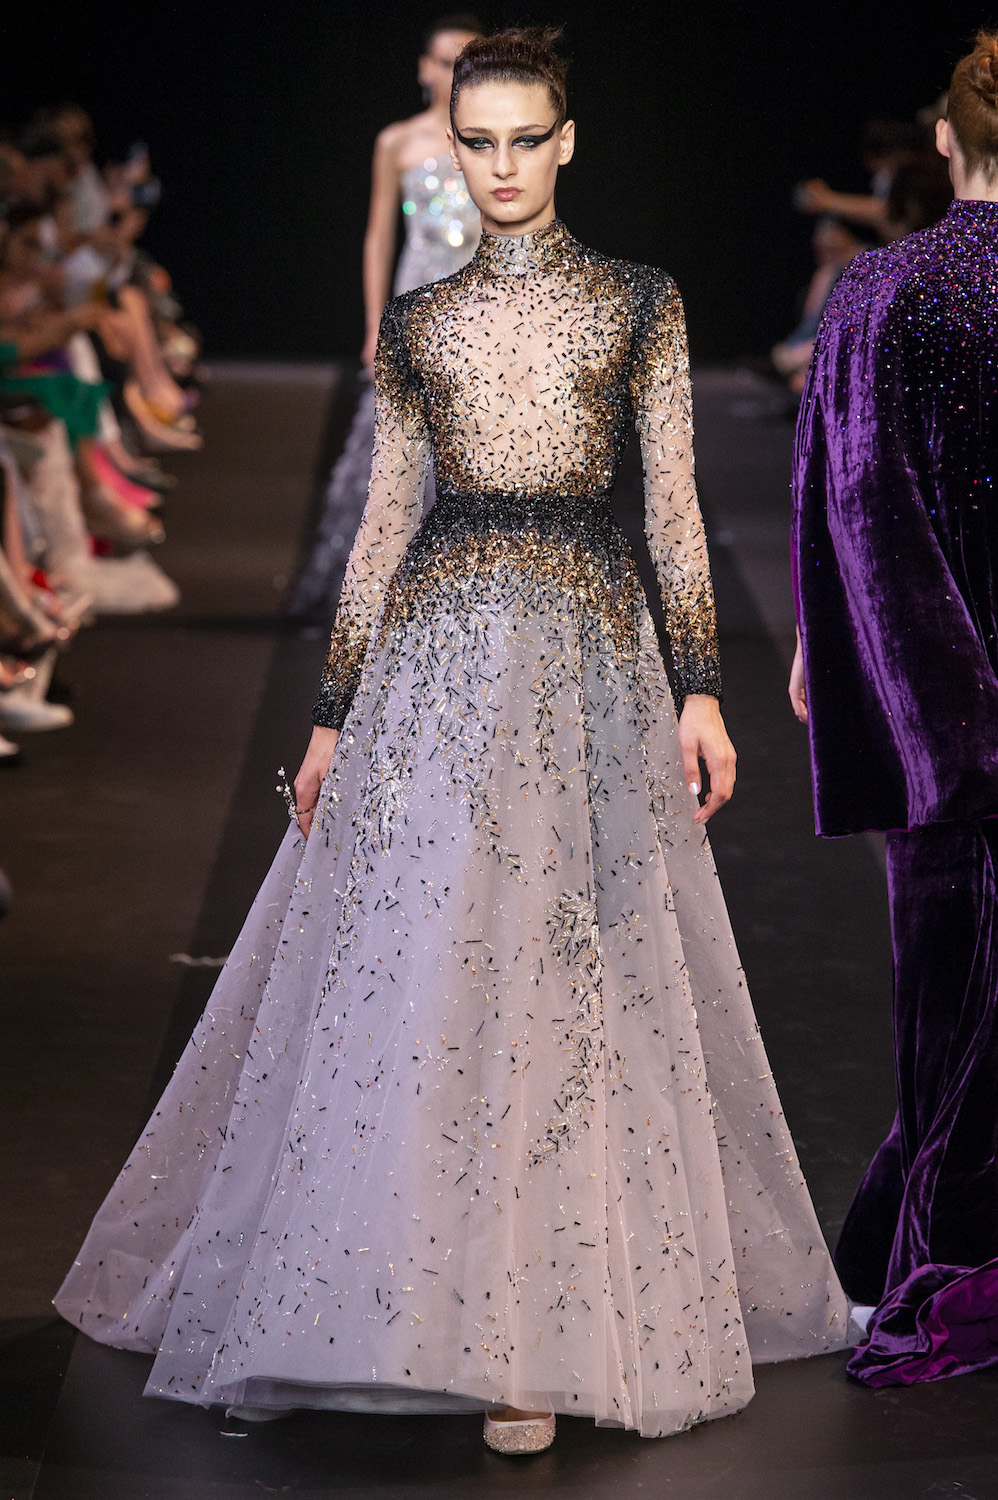 Georges Hobeika's (Metaphorical) Swan Song for Fall 2018 Couture